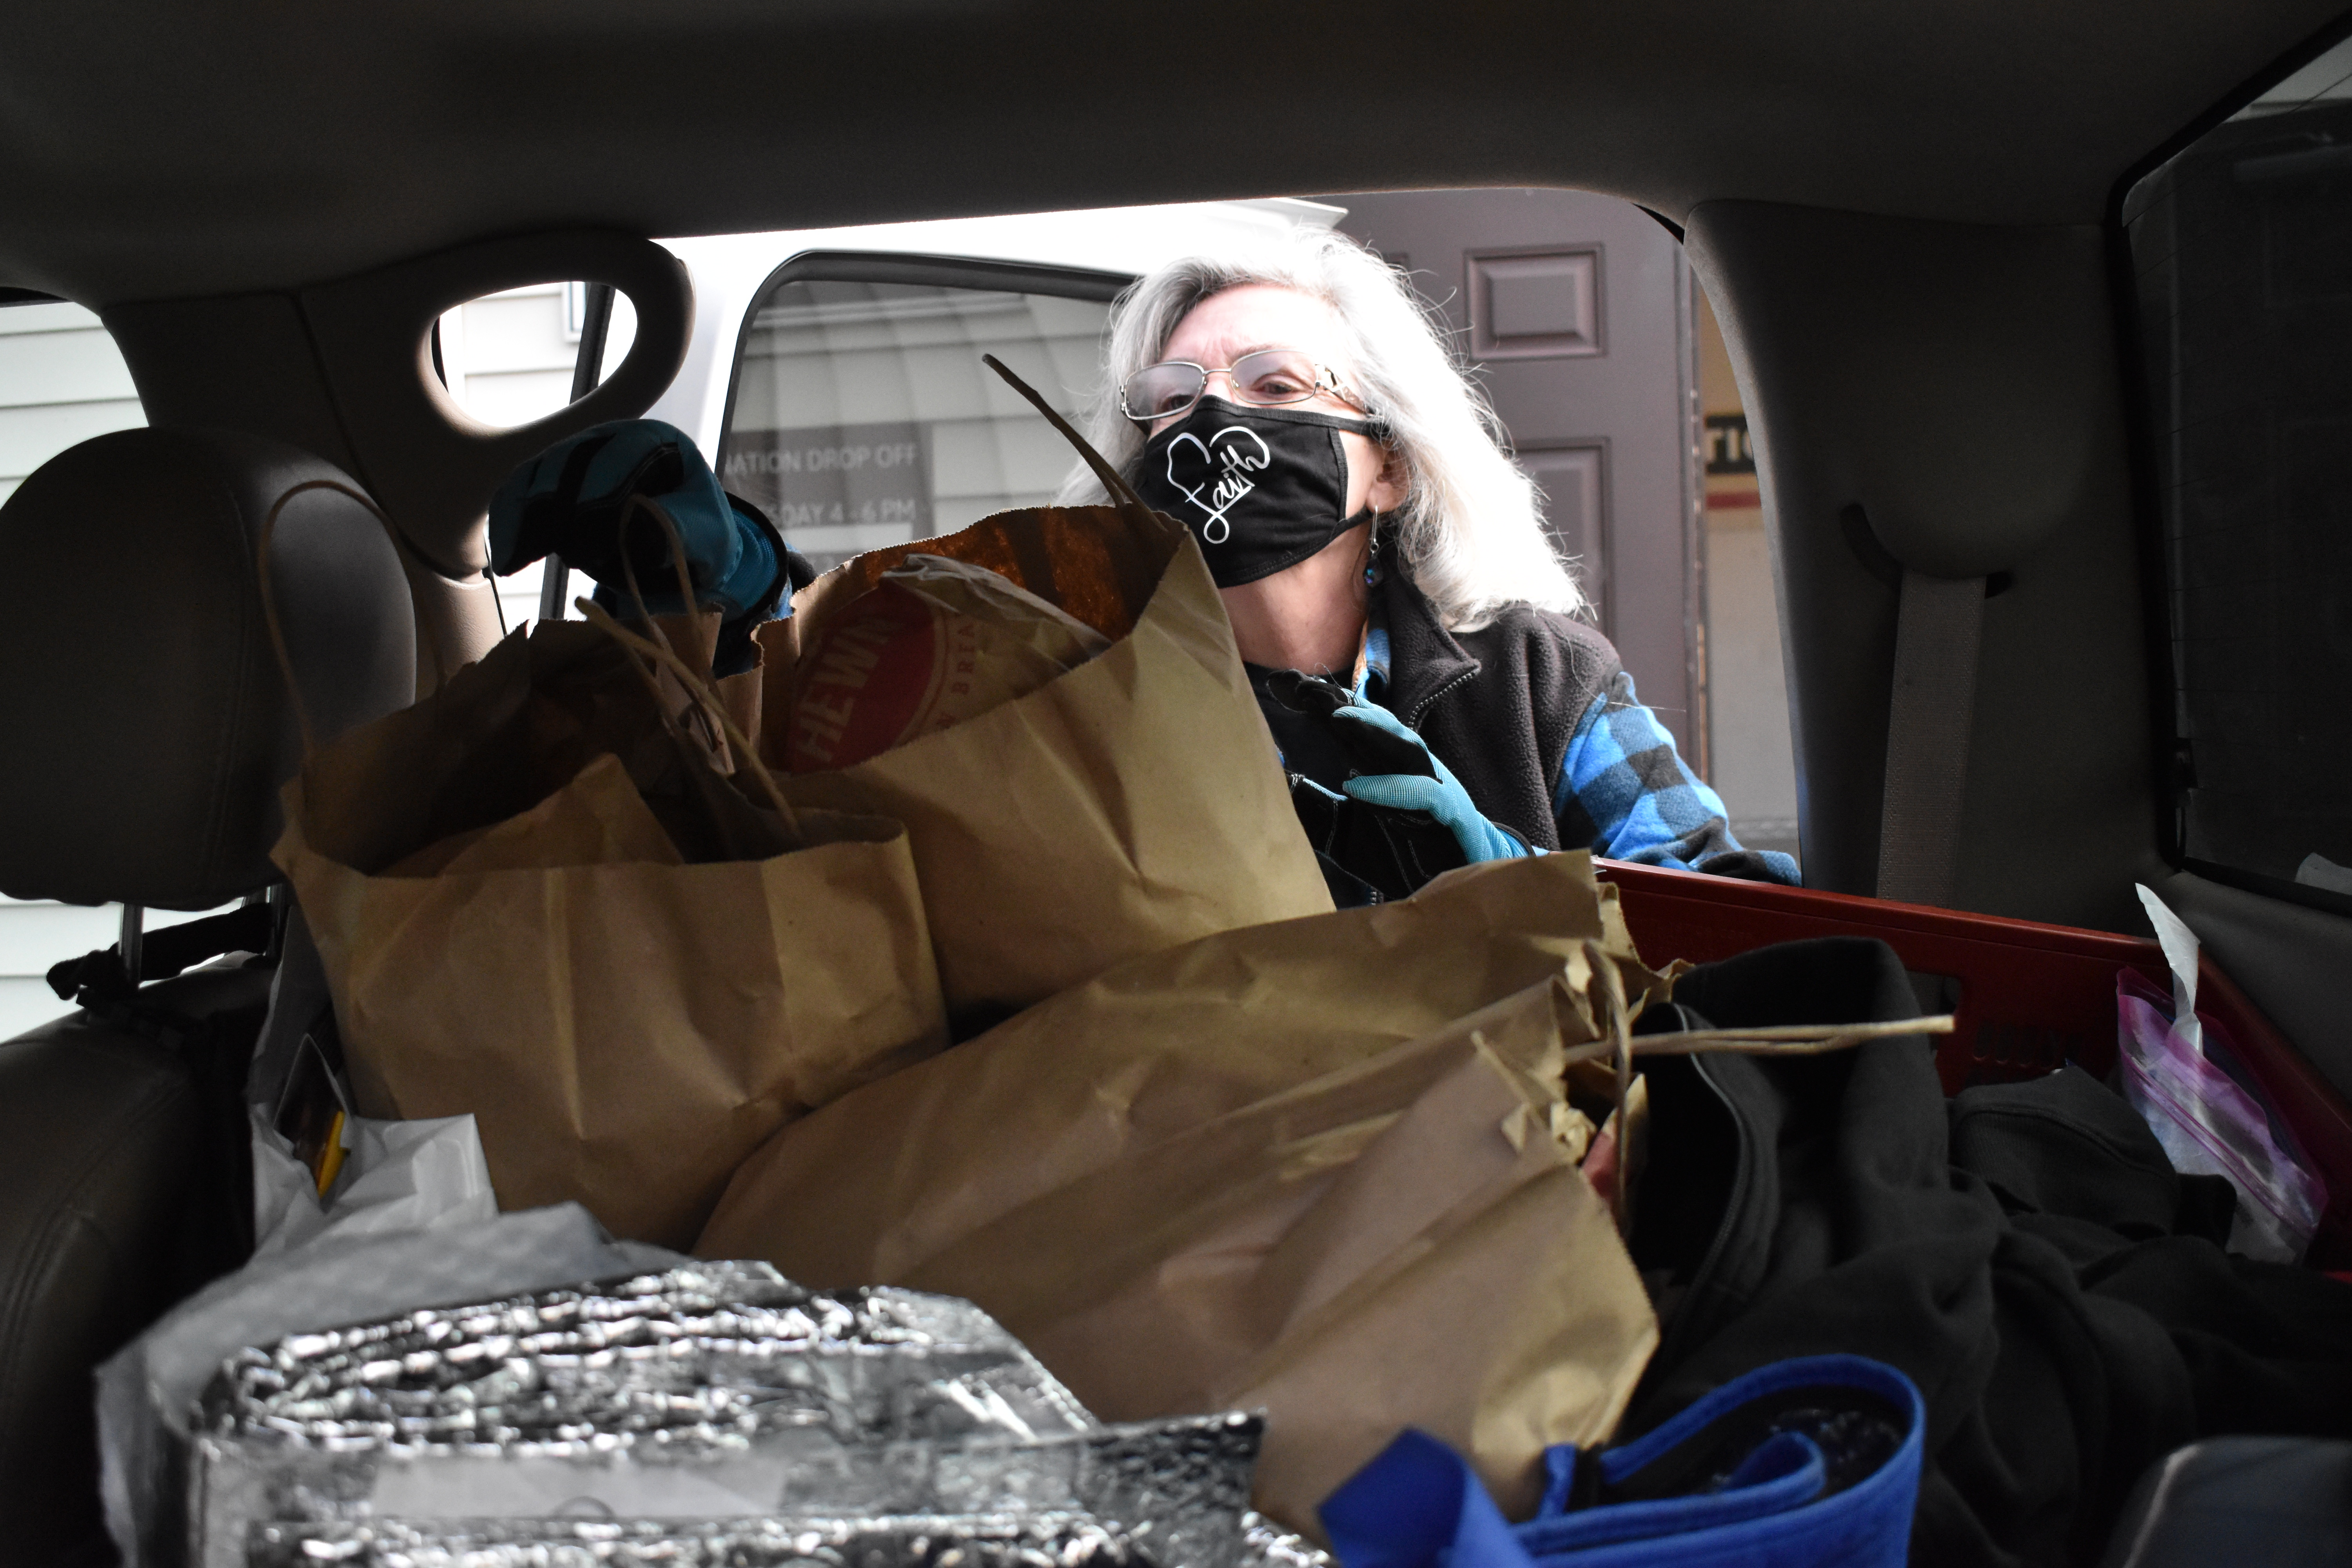 Faith Albano reaches into the back seat of her car to take out bags of bread donations from Hewn and load them into the Hillside Food Pantry.